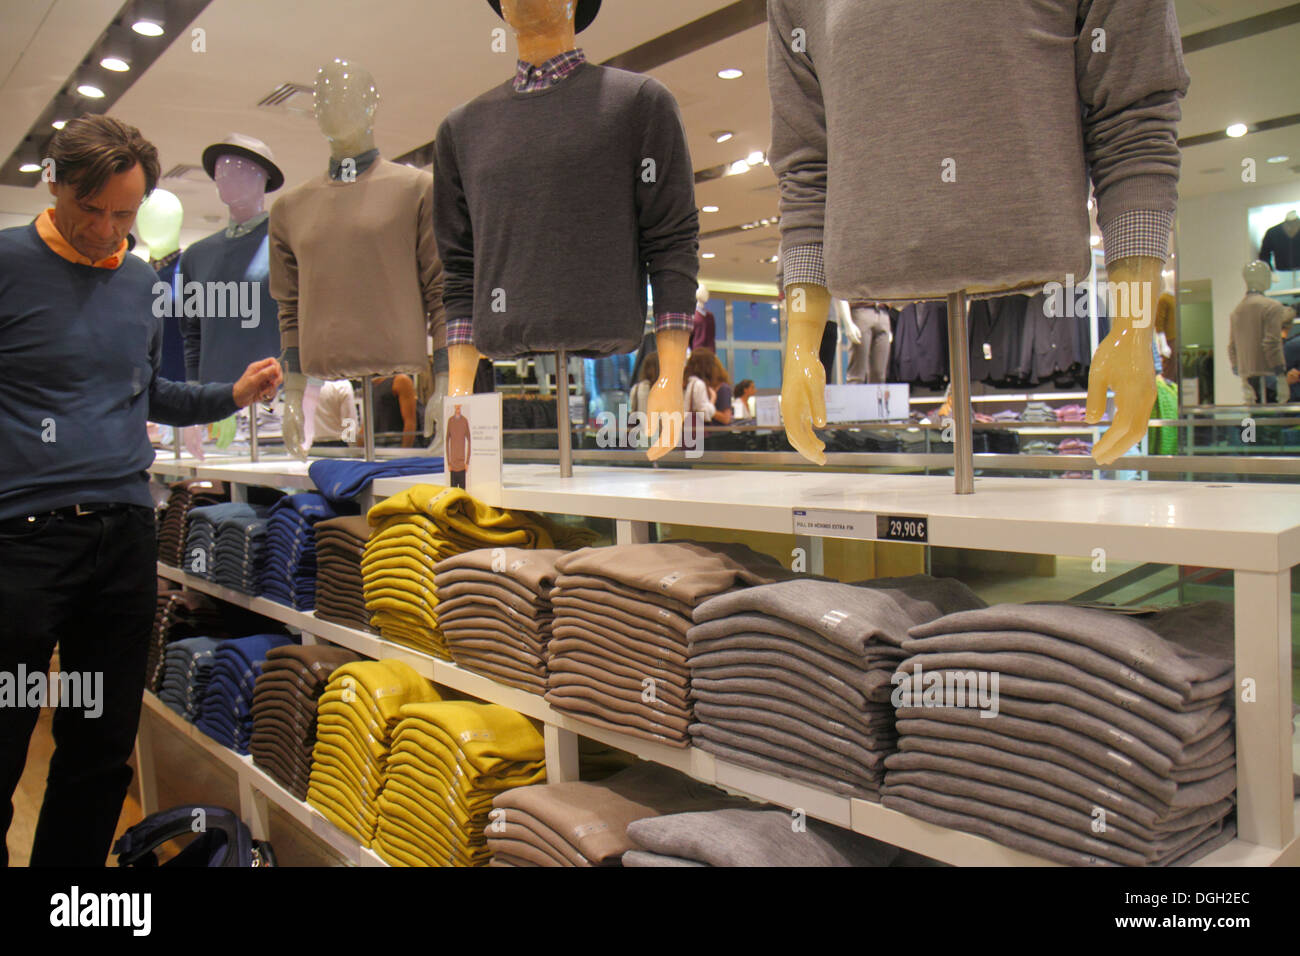 Paris France Europe French 9th arrondissement Rue Scribe shopping Uniqlo clothing store fashion sale retail display men's sweate - Stock Image